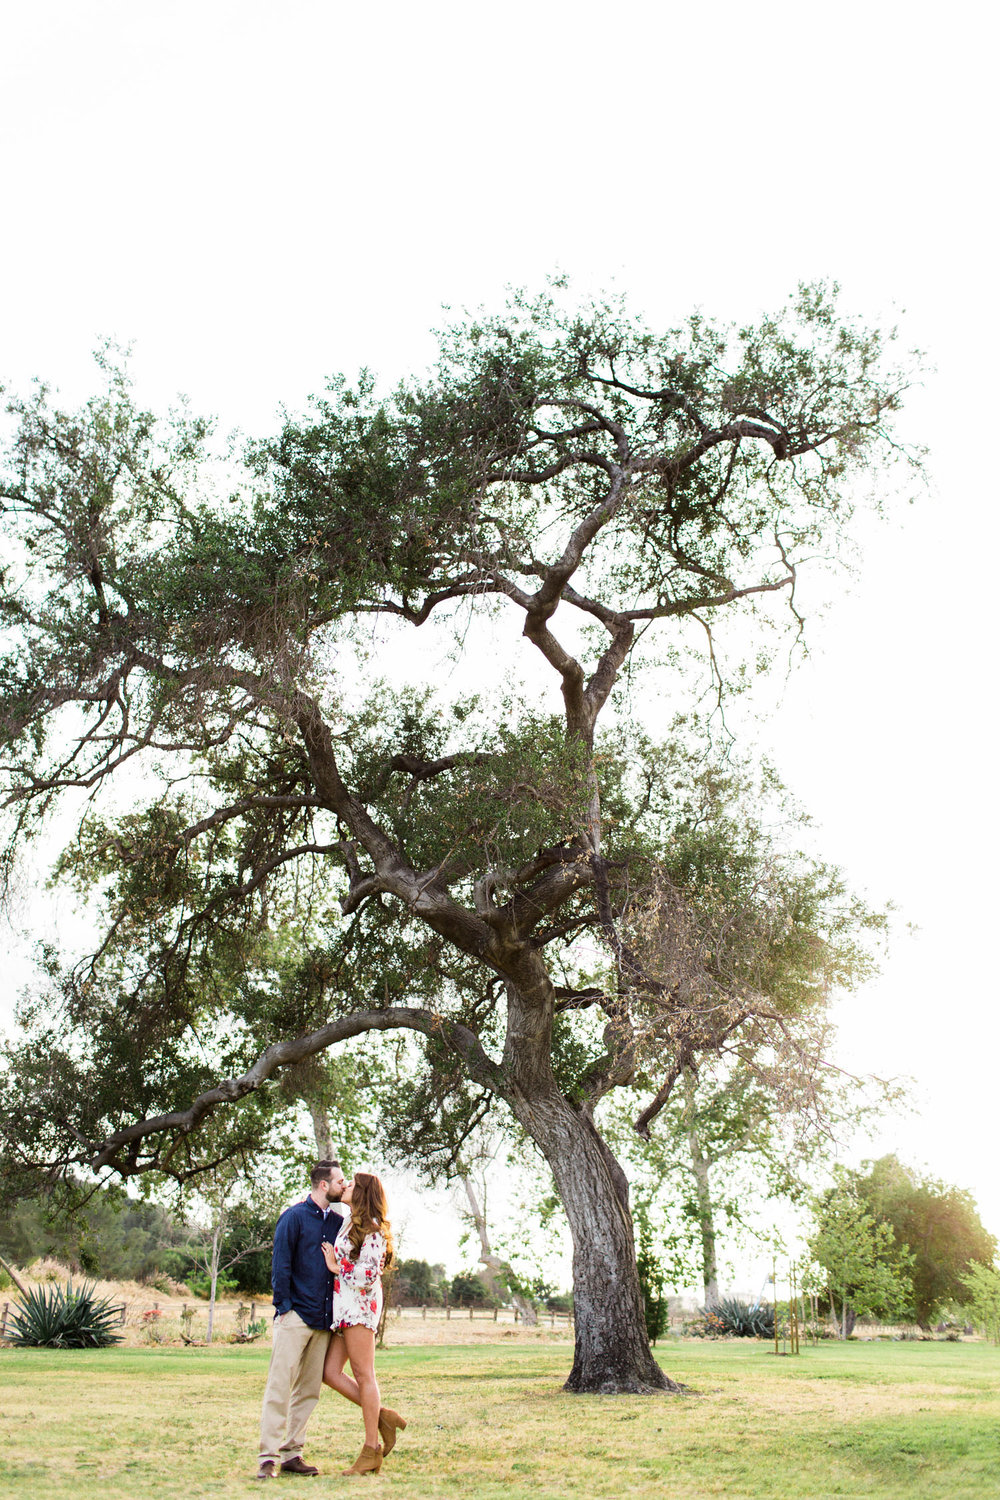 thevondys.com | Los Angeles Engagement | Southern California Wedding Photographer | The Vondys